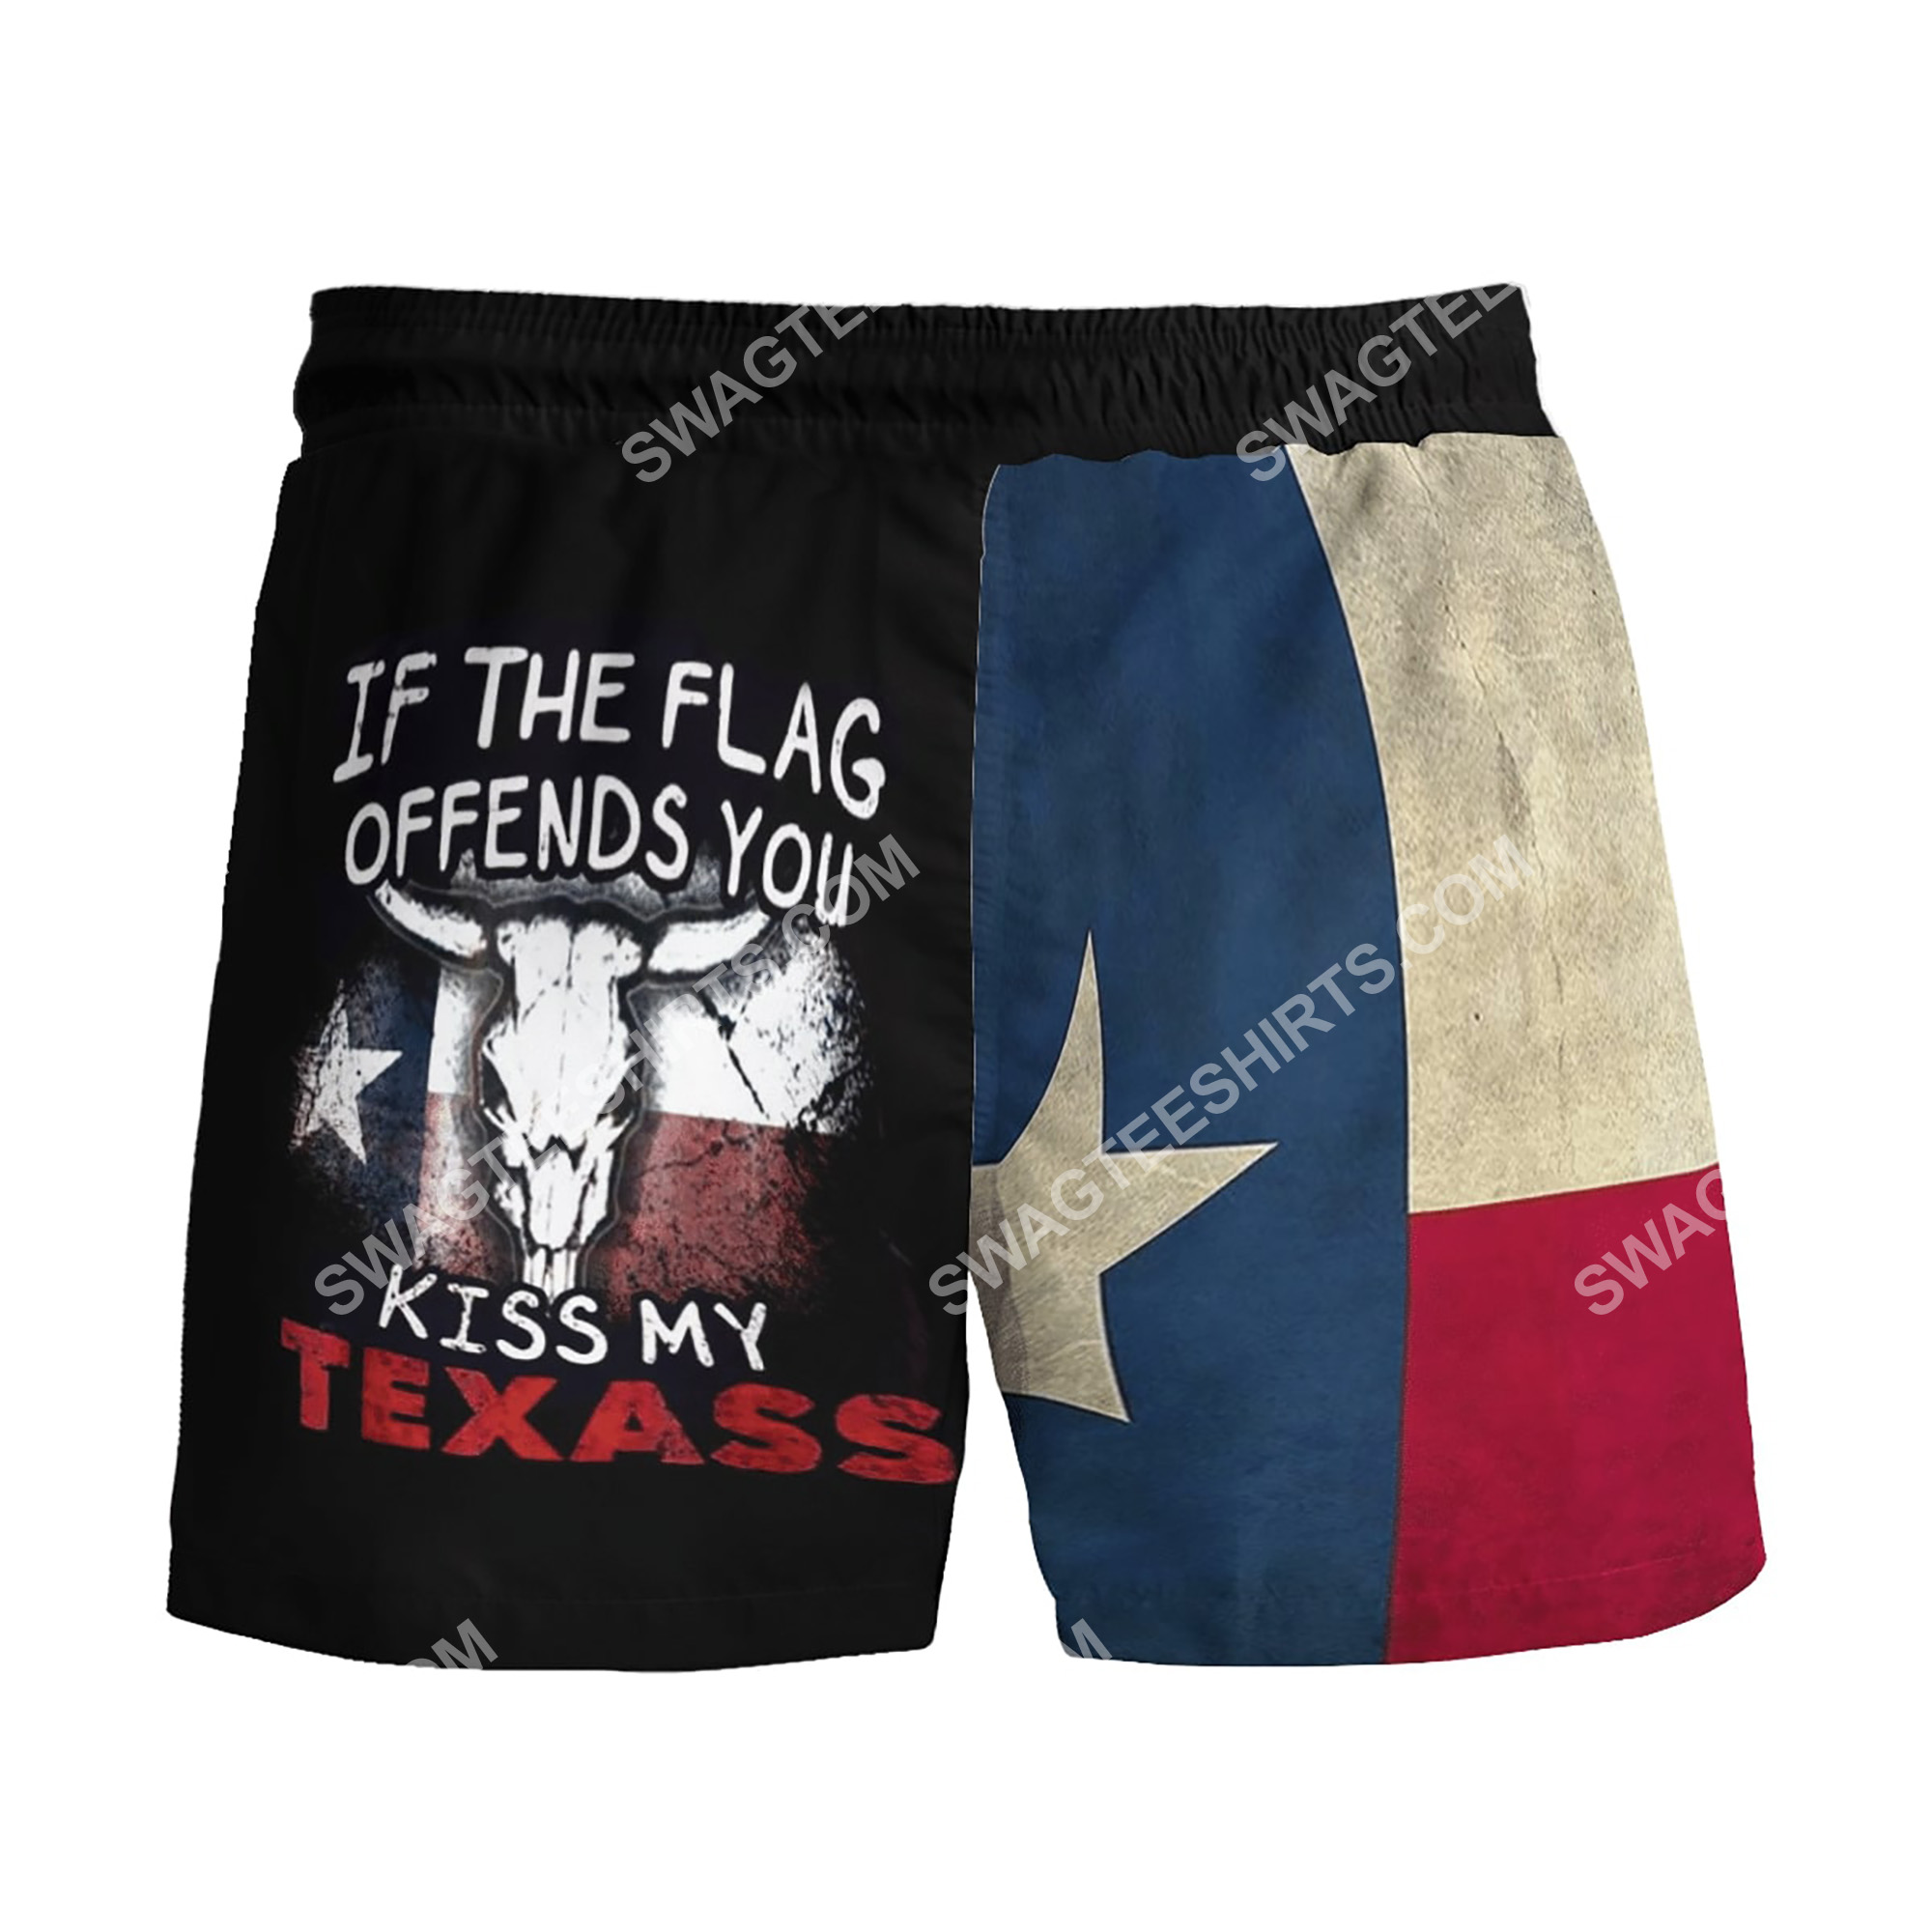 if the flag offends you kiss my texas all over printed beach shorts 3(1)